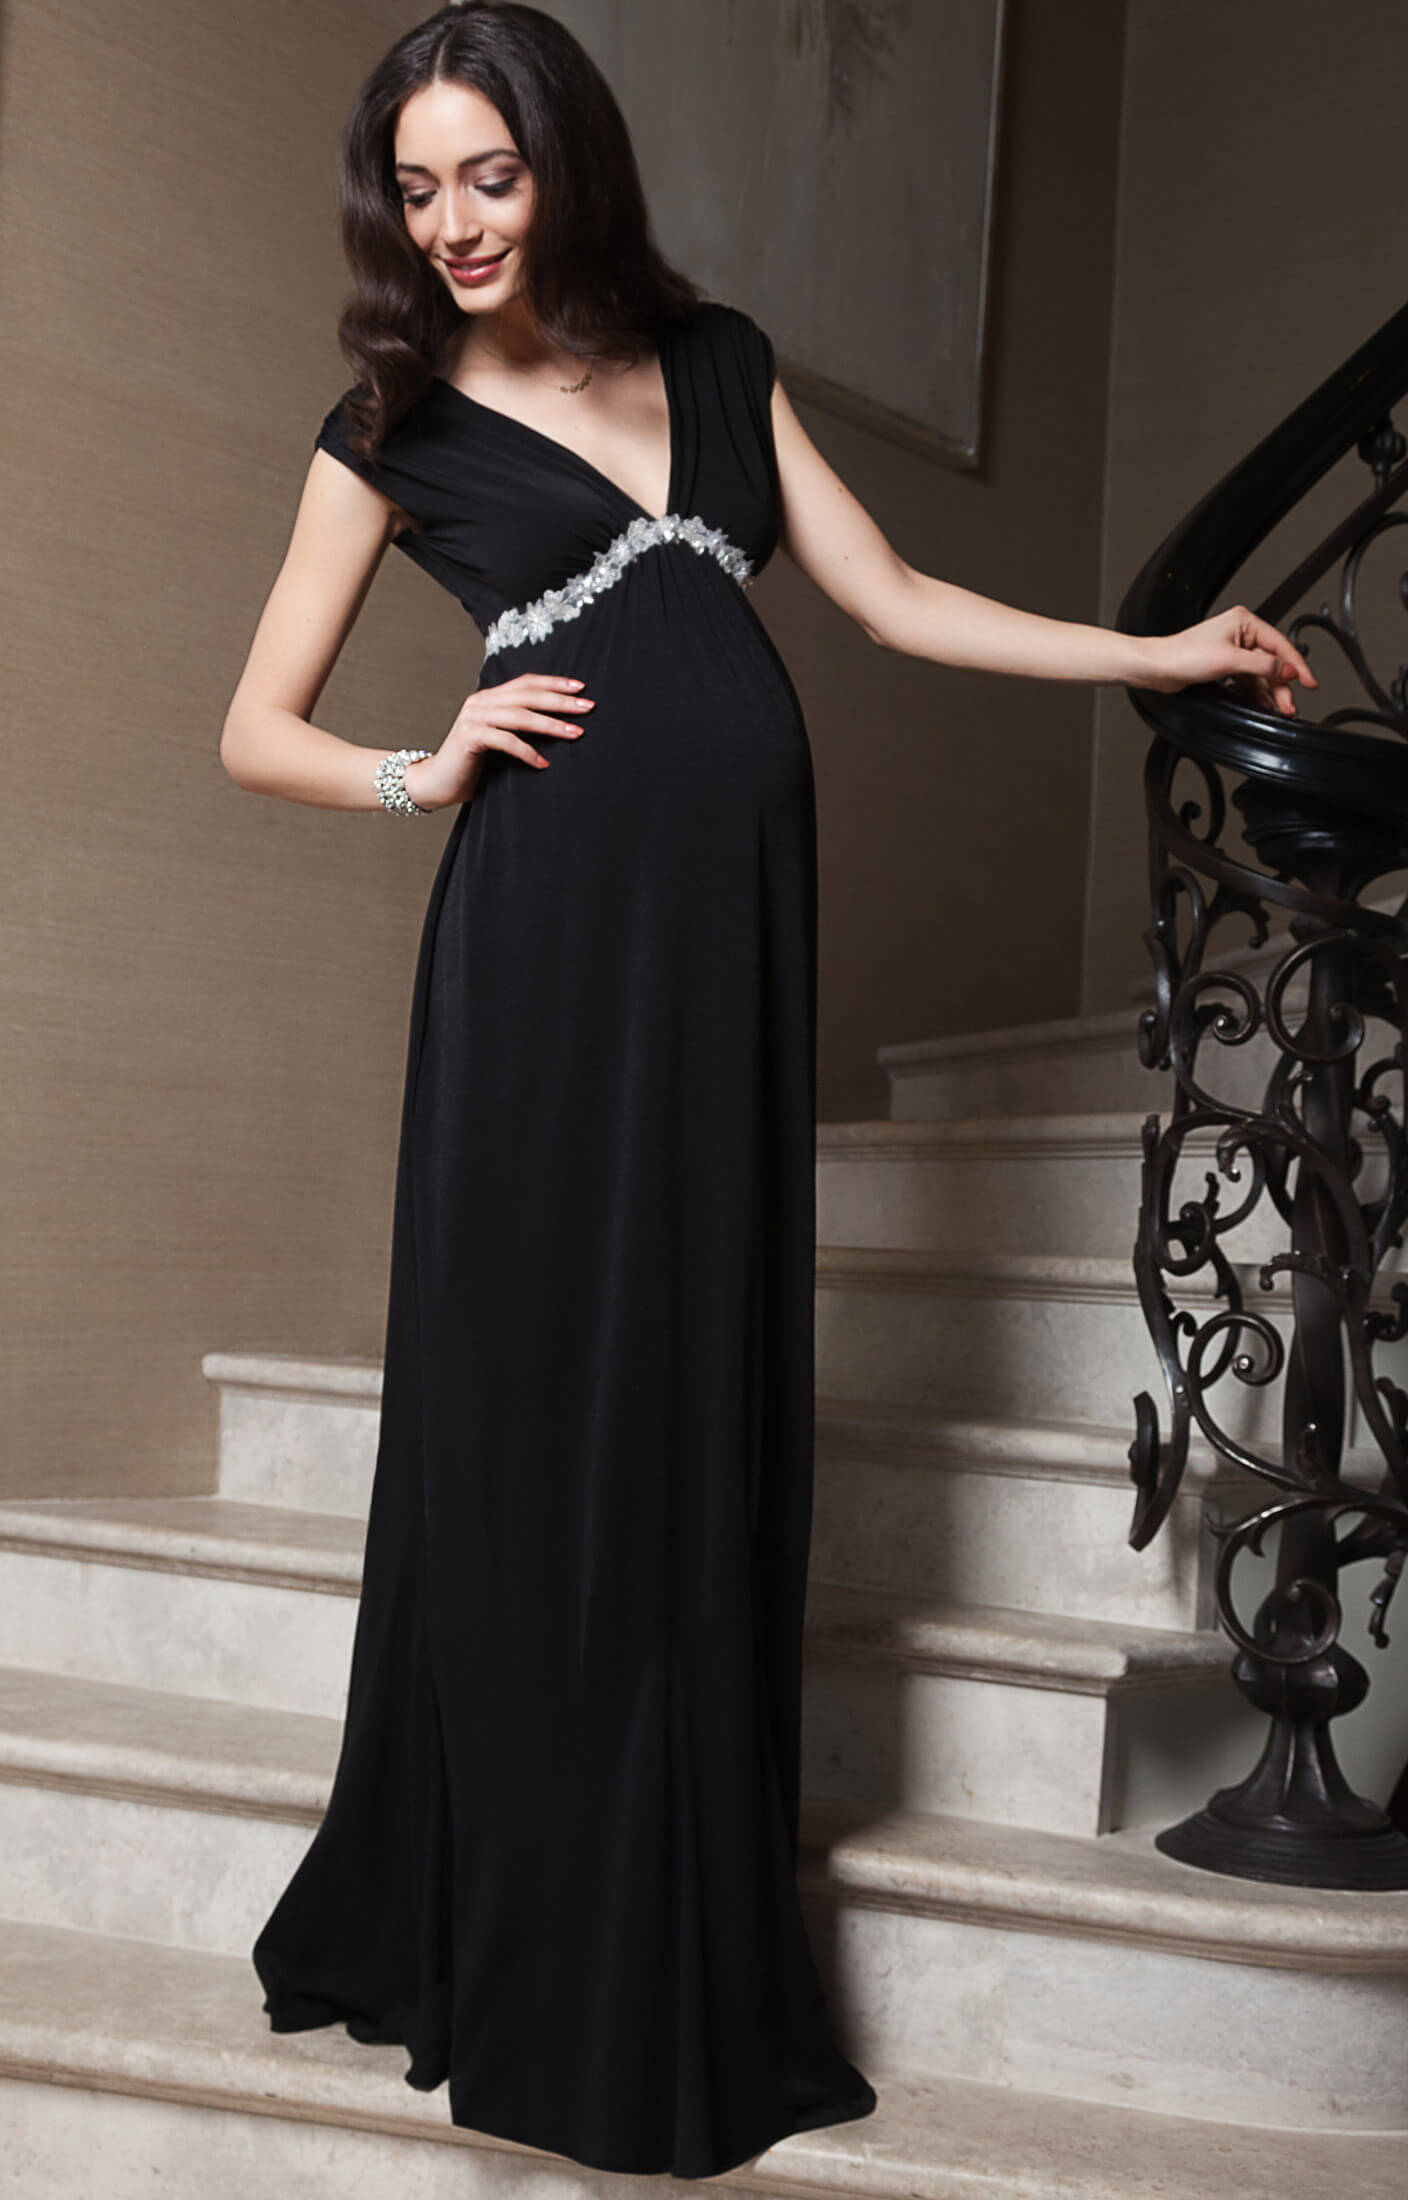 Aurora maternity gown long black maternity wedding dresses aurora maternity gown long black maternity wedding dresses evening wear and party clothes by tiffany rose ombrellifo Images